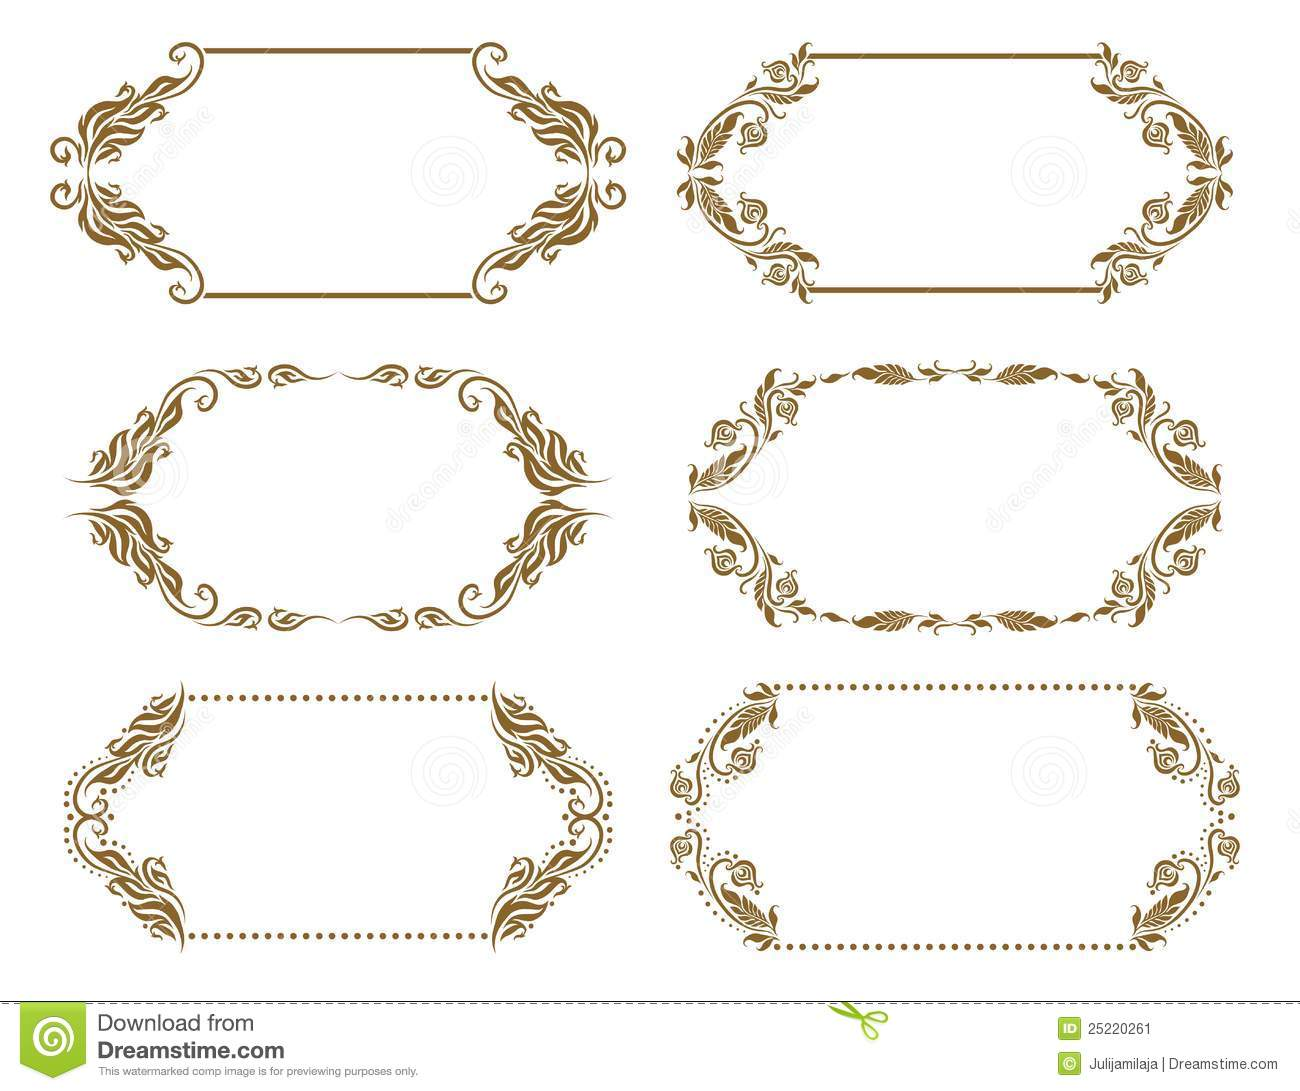 Set Of Ornate Vector Frames Stock Image - Image: 25220261